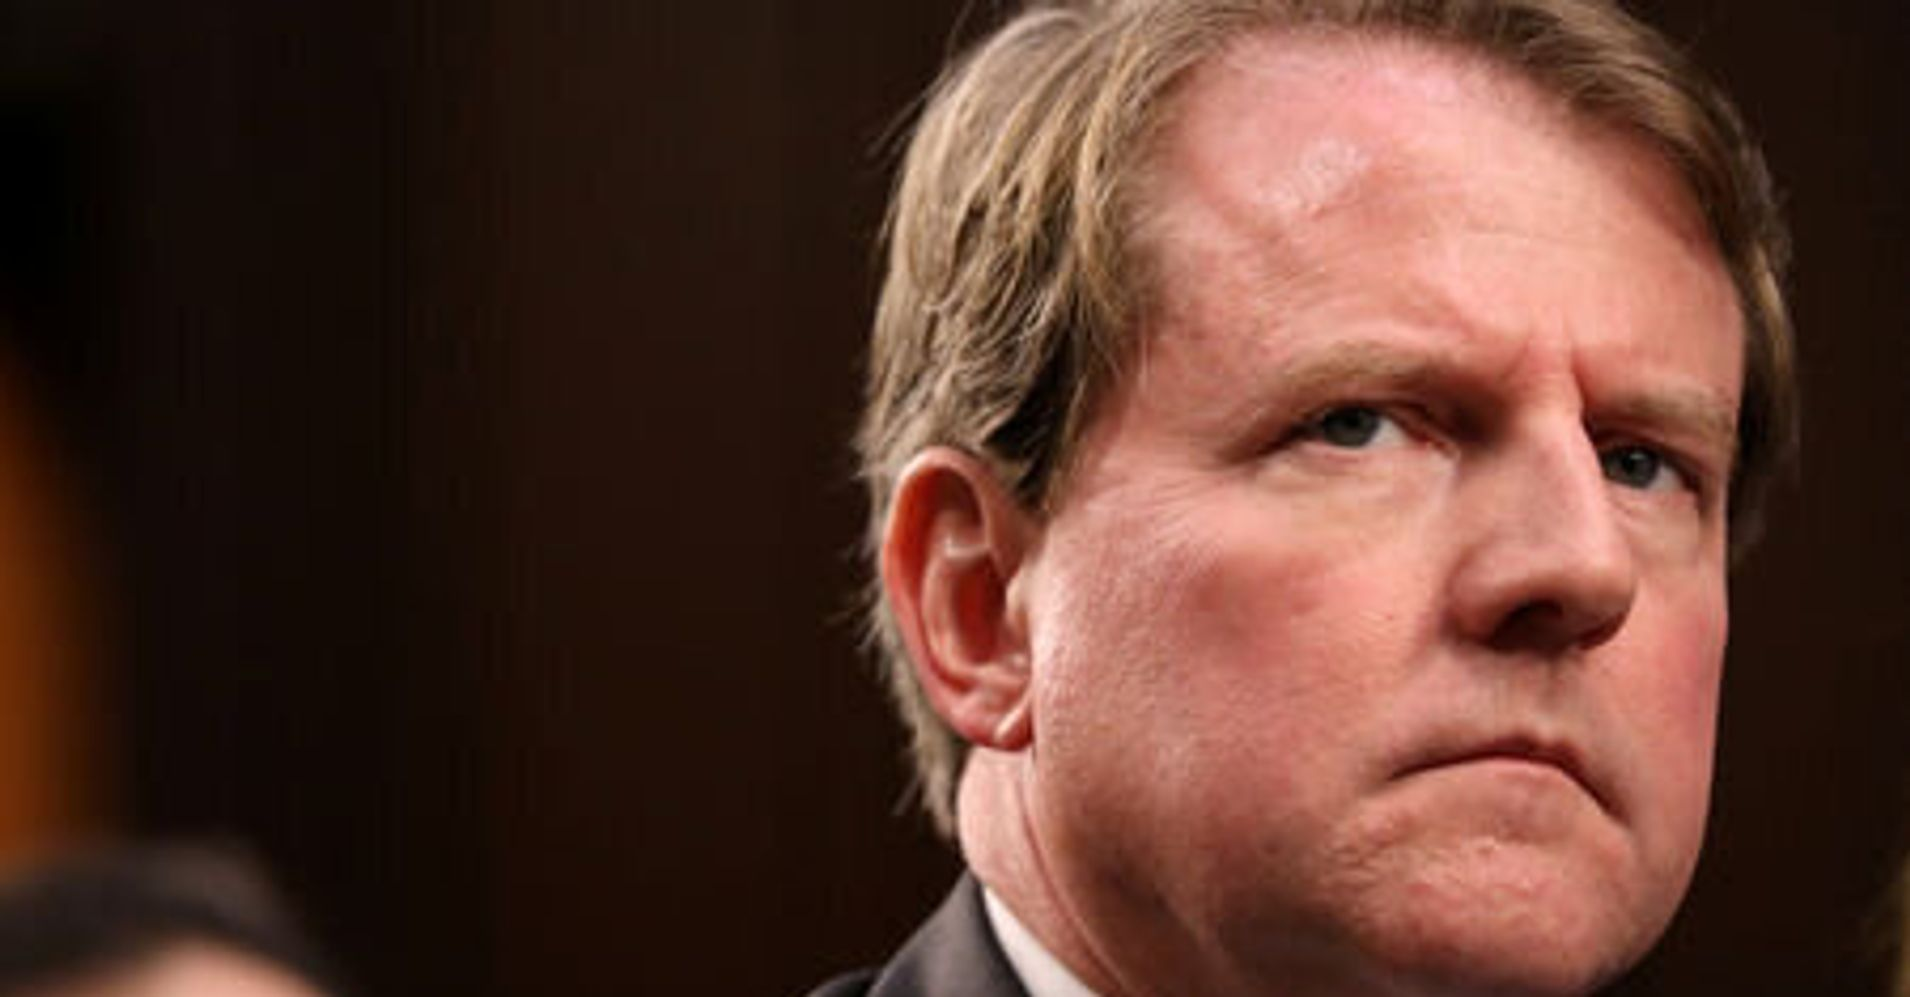 Trump To Block Ex-White House Lawyer Don McGahn From Testifying On Mueller Report